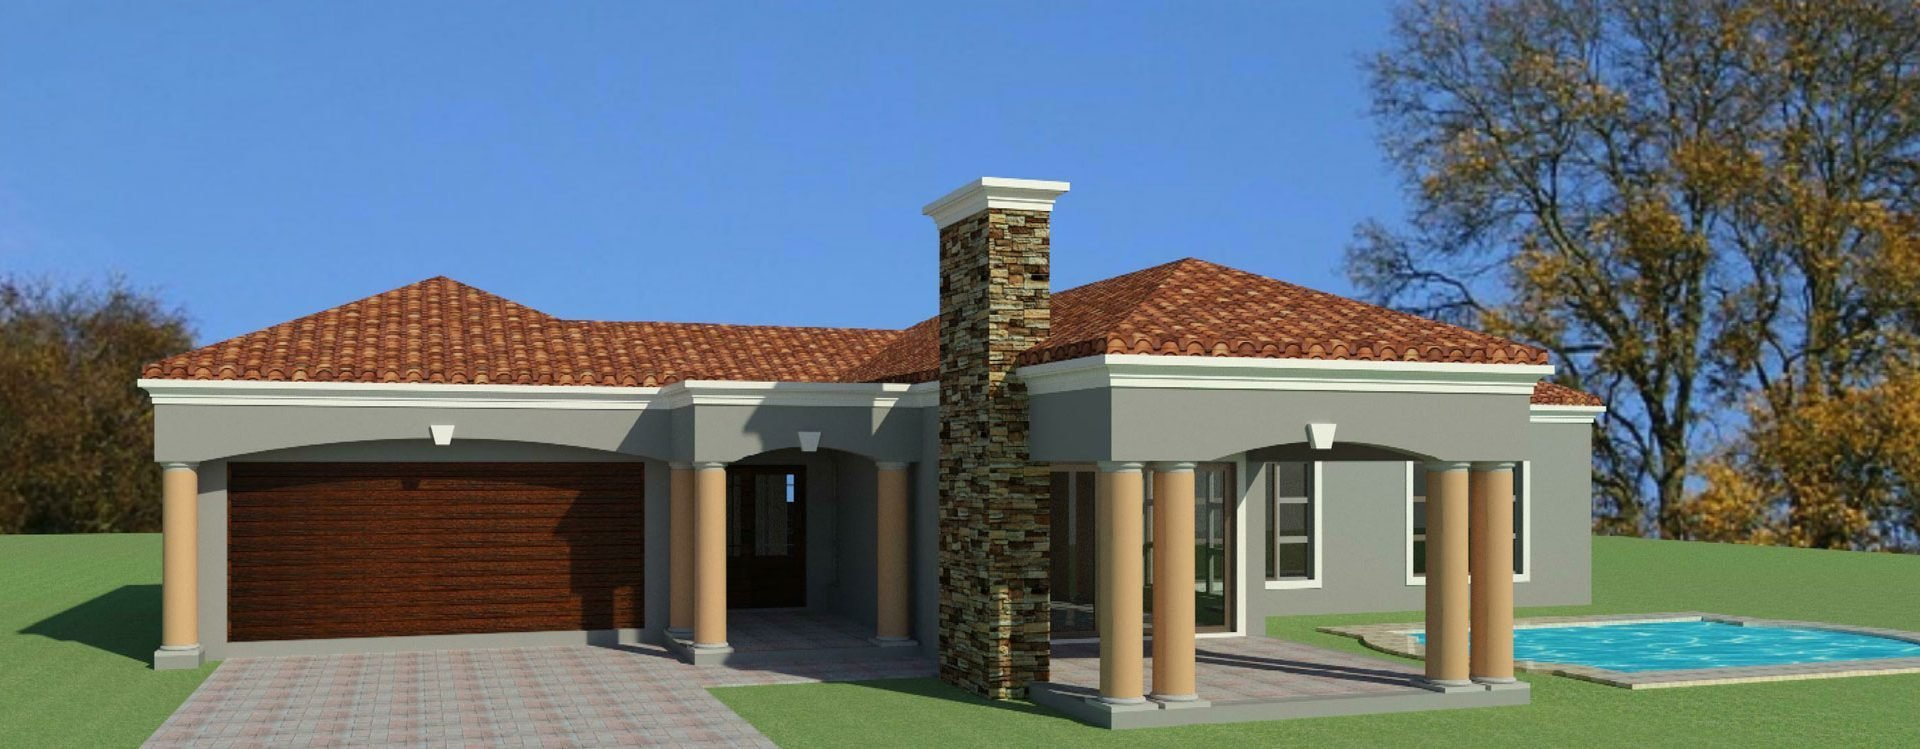 Best House Plans South Africa 4 Bedroom House Plans Nethouseplans Affordable House Plans With Pictures